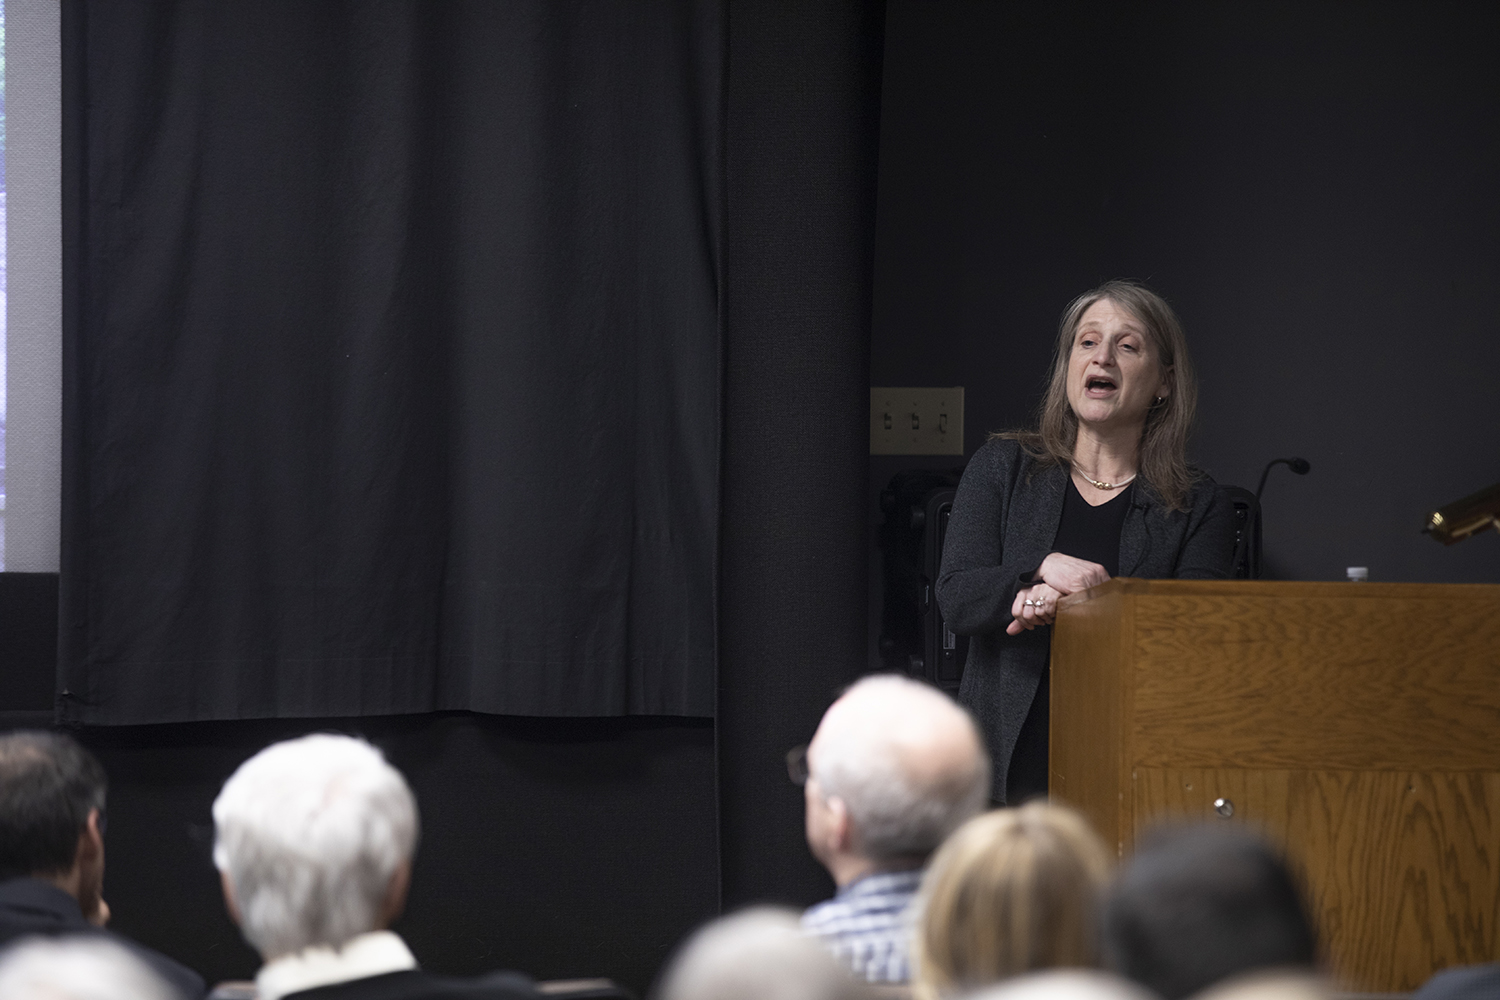 Margaret Raymond speaks during the second provost candidate meeting Monday afternoon on Jan. 28, 2019. This is the second of four provost meetings meant to fulfill the position.